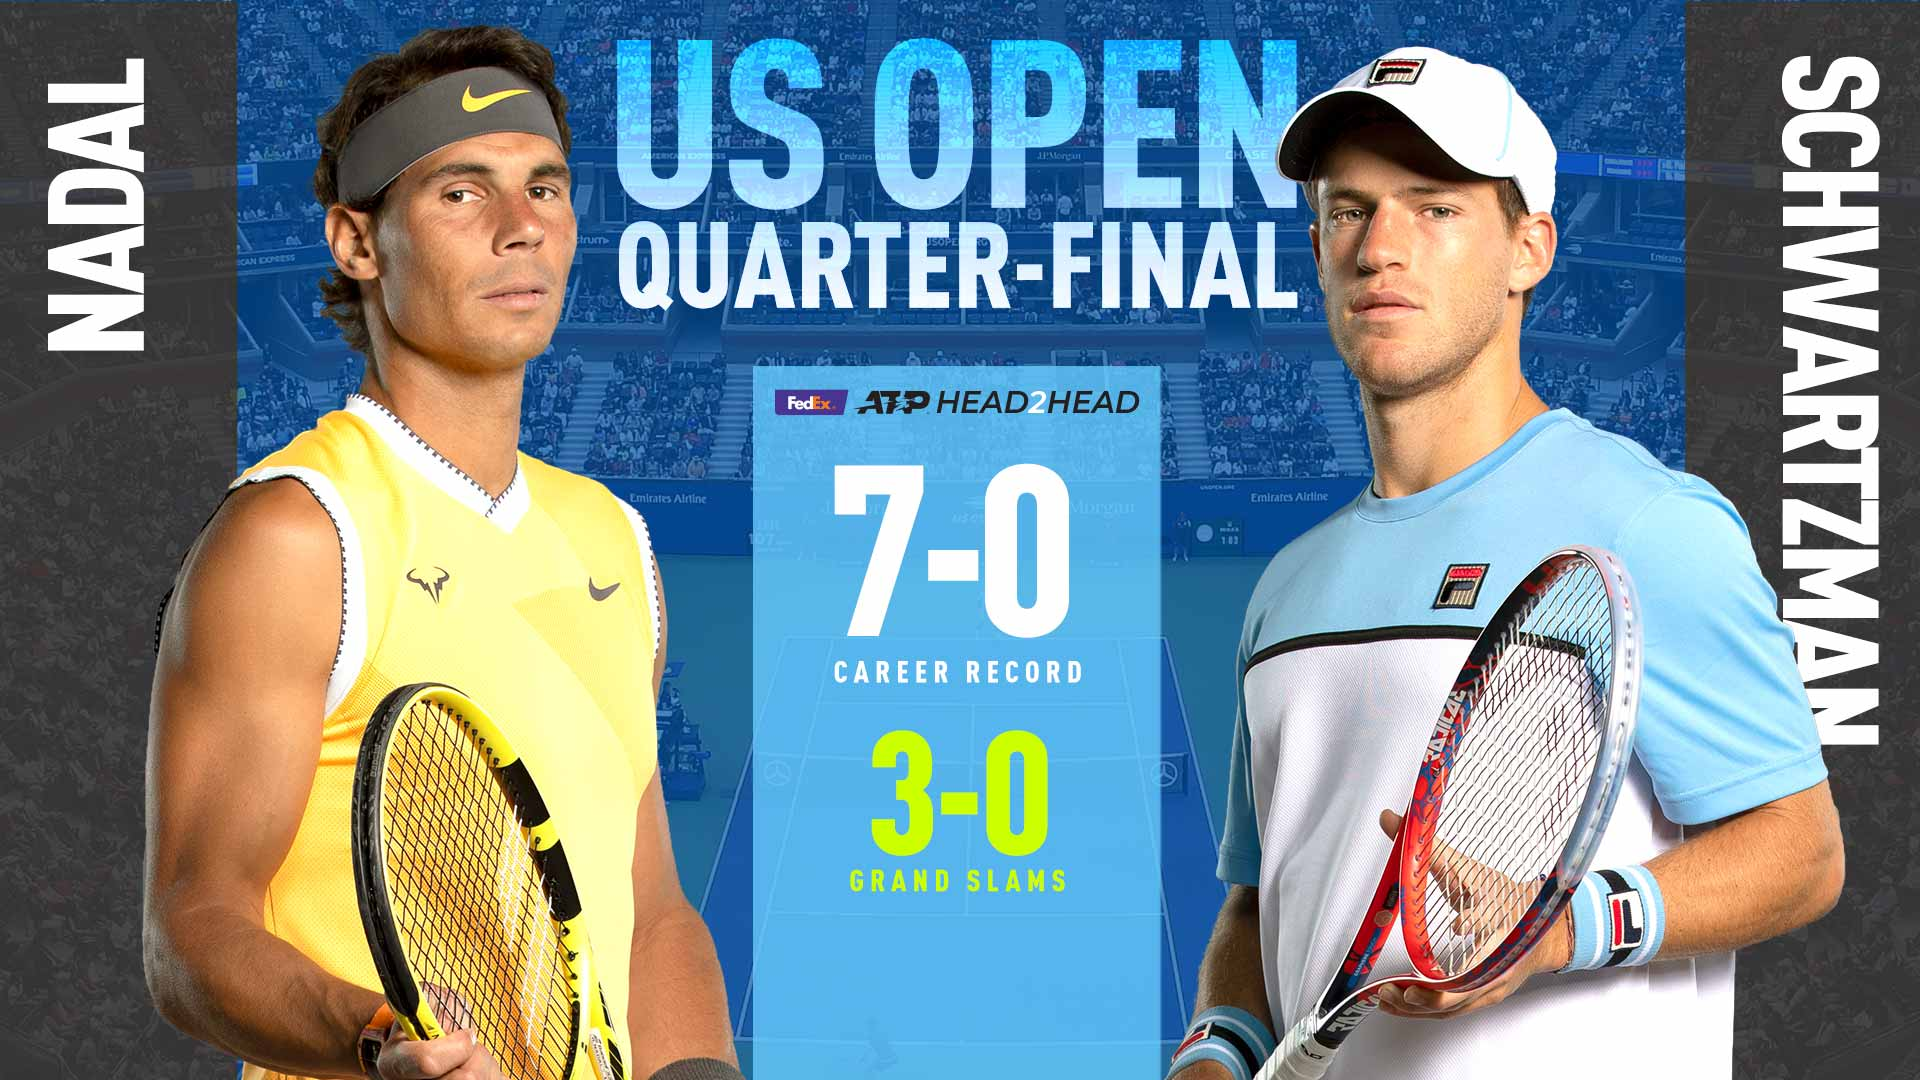 Rafael Nadal and Diego Schwartzman 2019 US Open QF